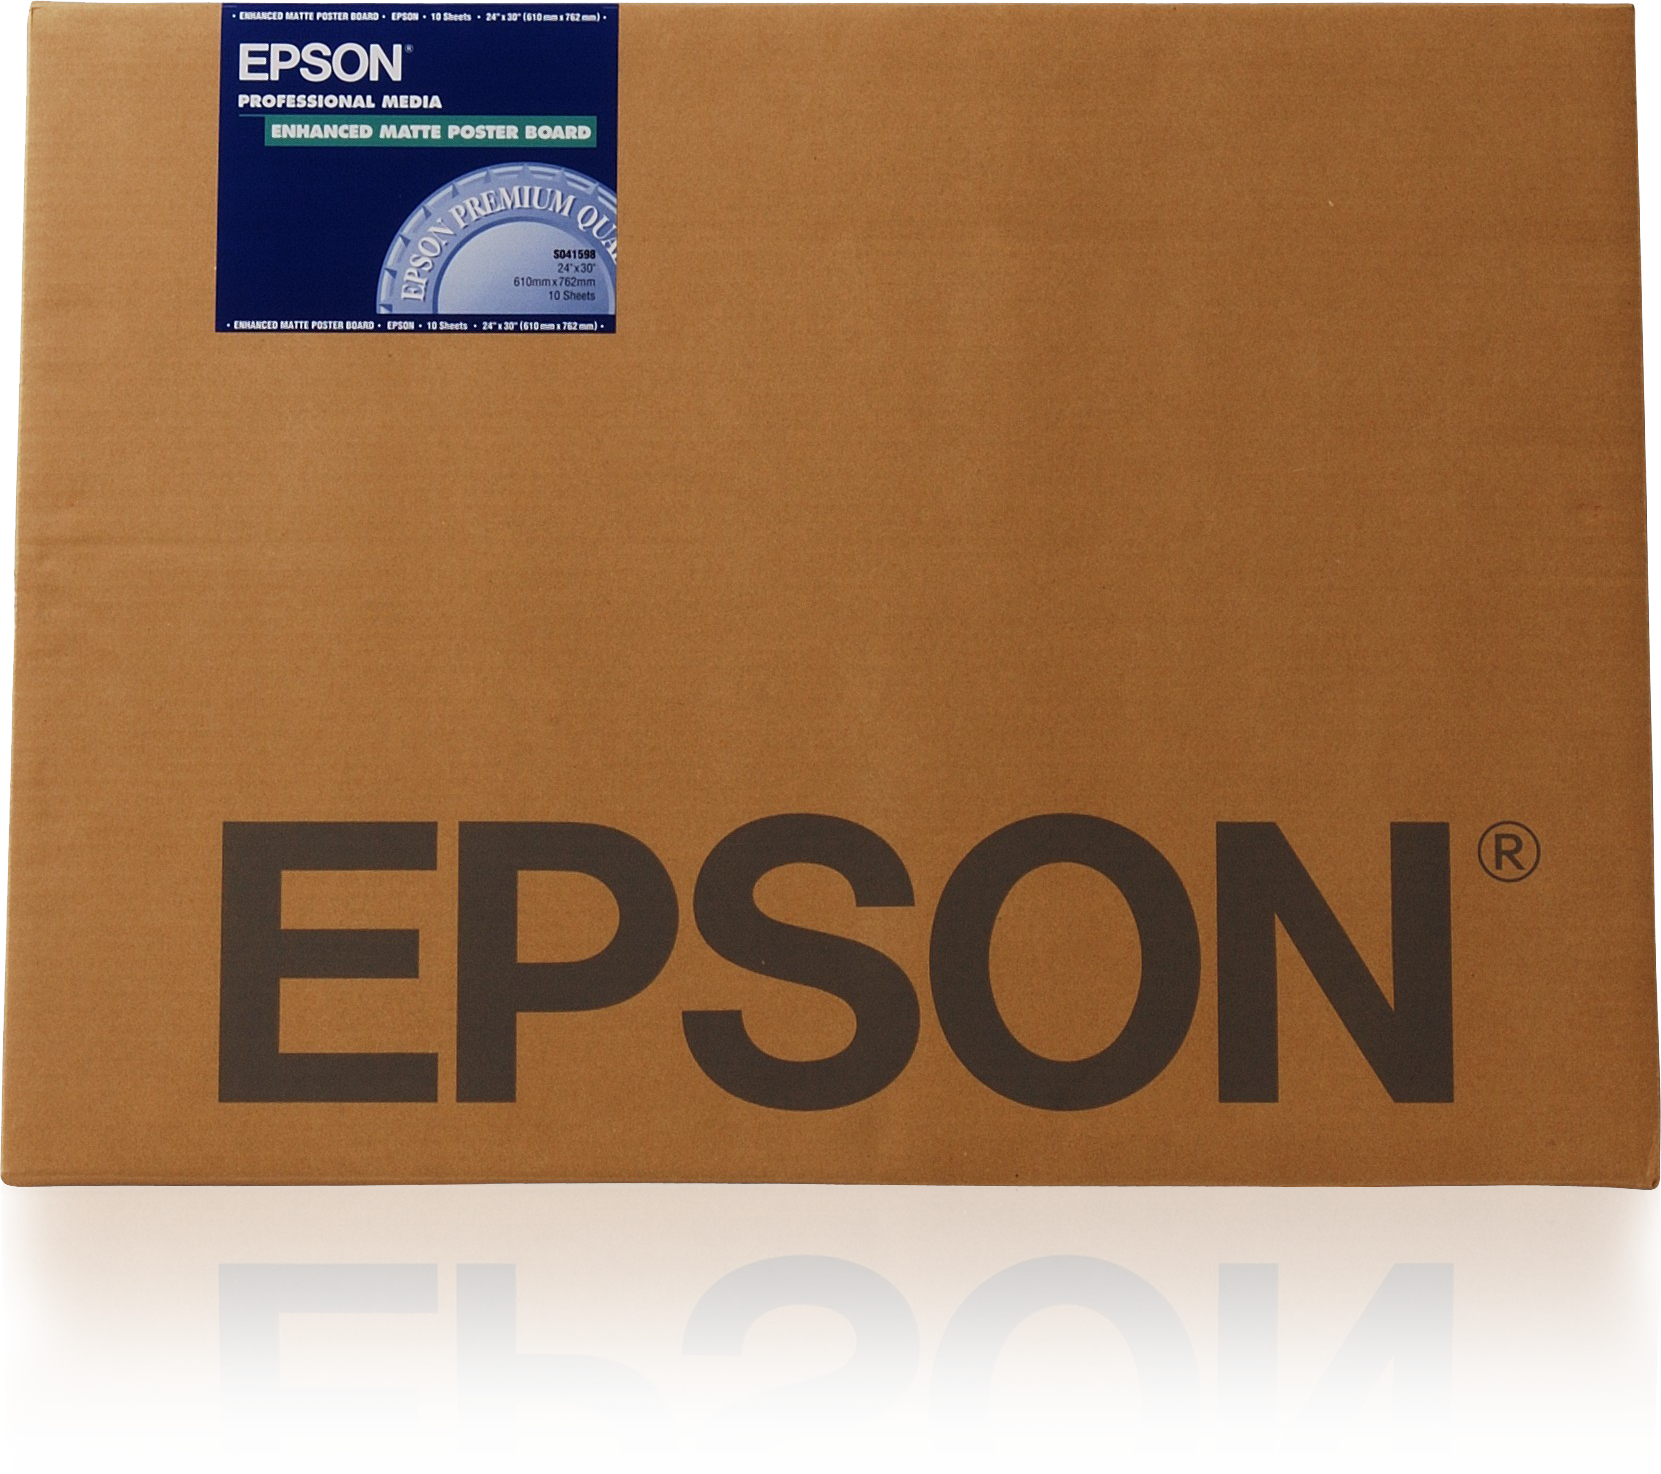 "Epson Enhanced Posterboard, 30"" x 40"", 1130g/m² large format media"